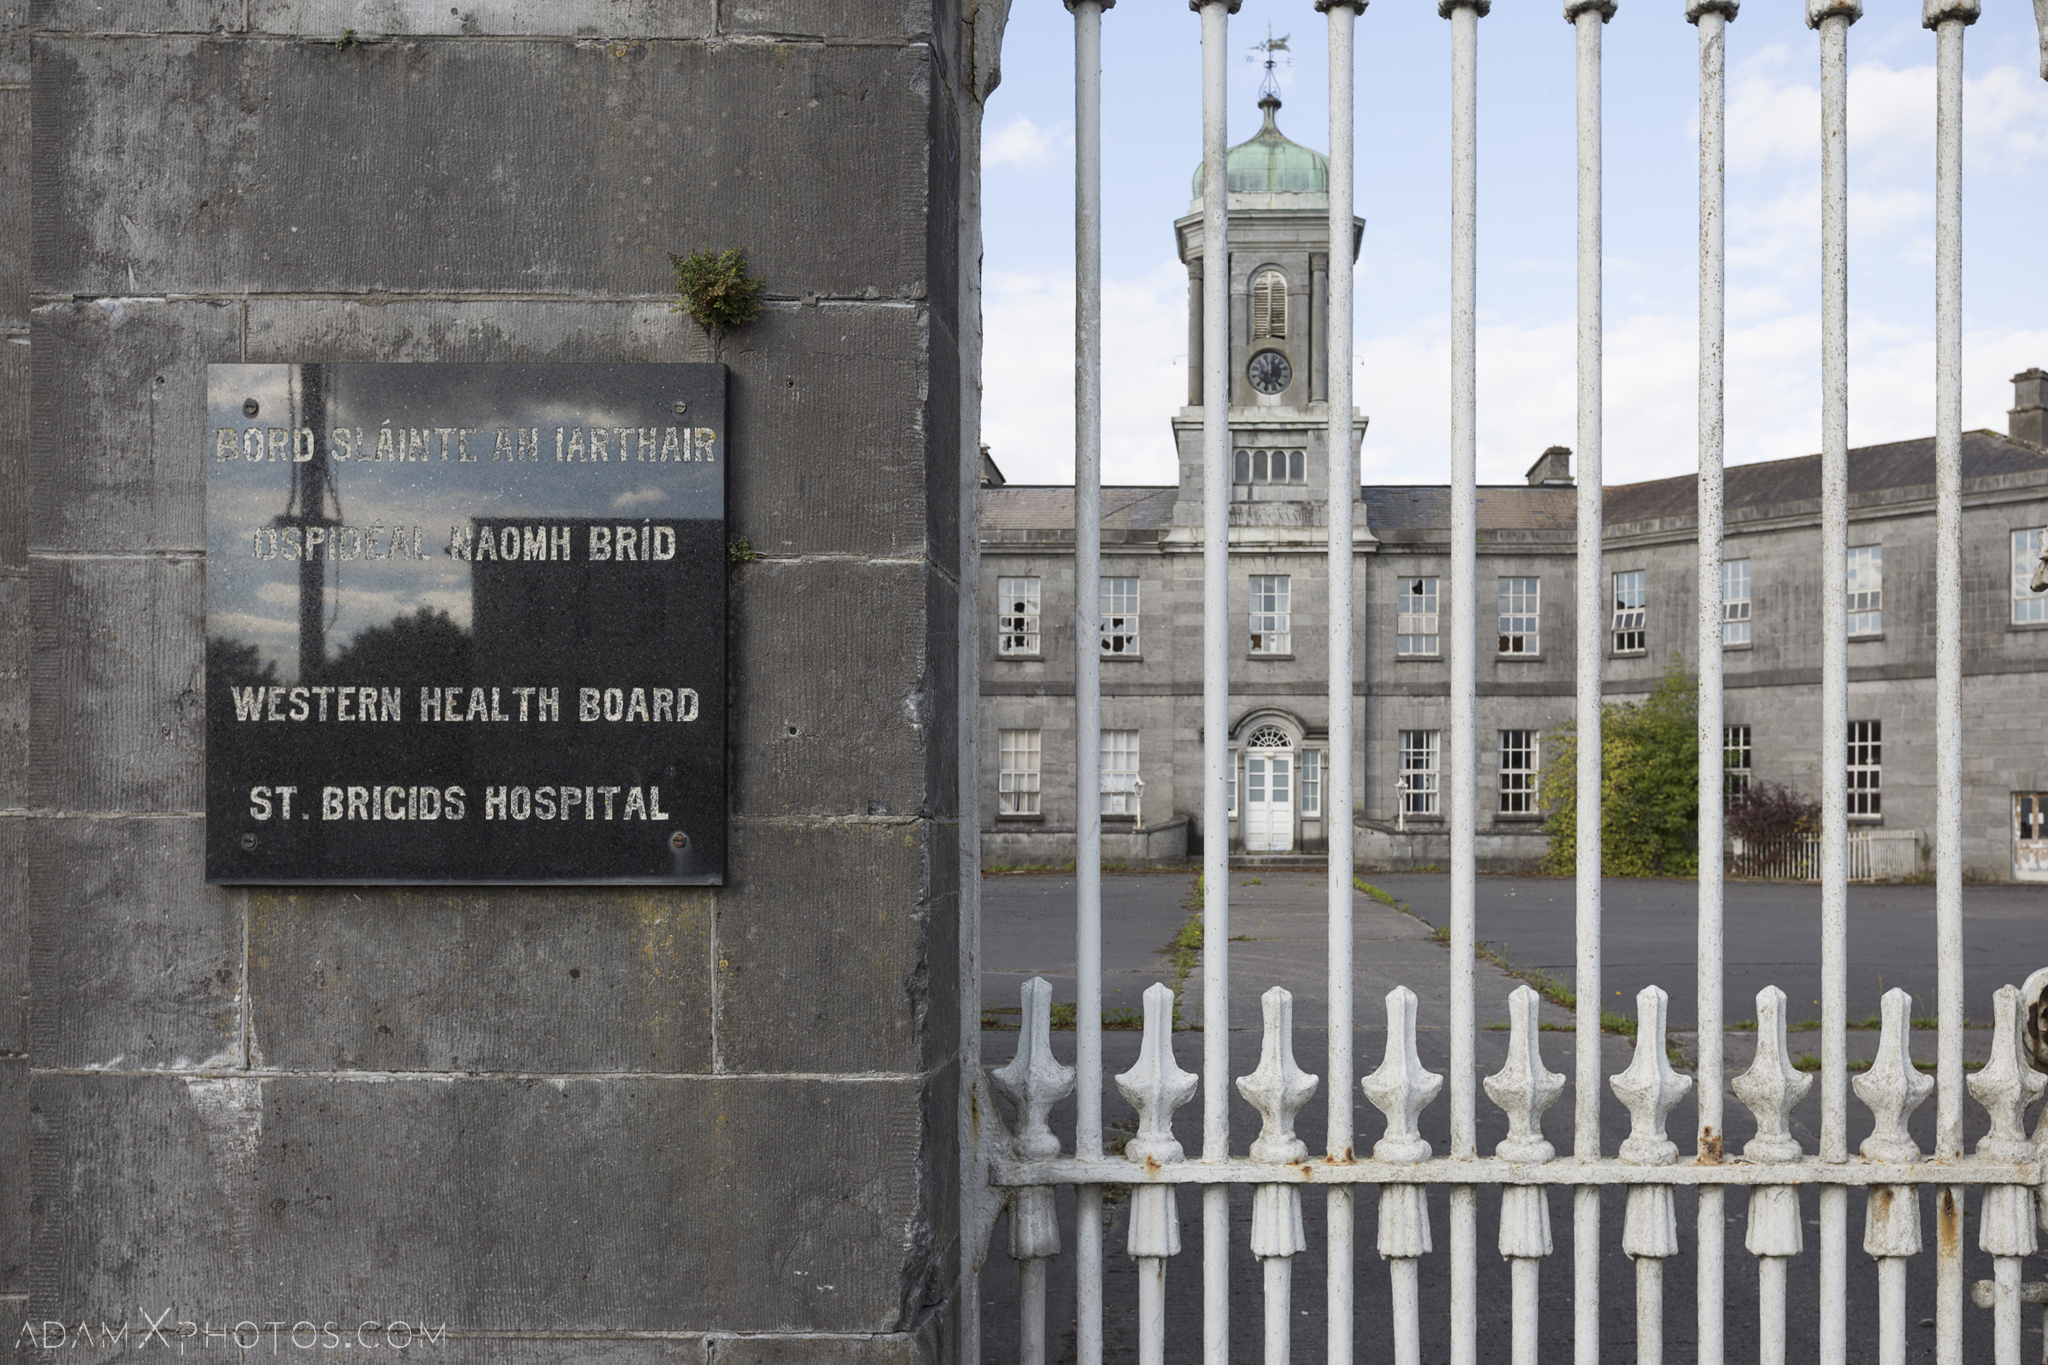 front gate exterior external outside Connacht District Lunatic Asylum St Brigid's Hospital Adam X Urbex Urban Exploration Ireland Ballinasloe Access 2017 Abandoned decay lost forgotten derelict location creepy haunting eerie